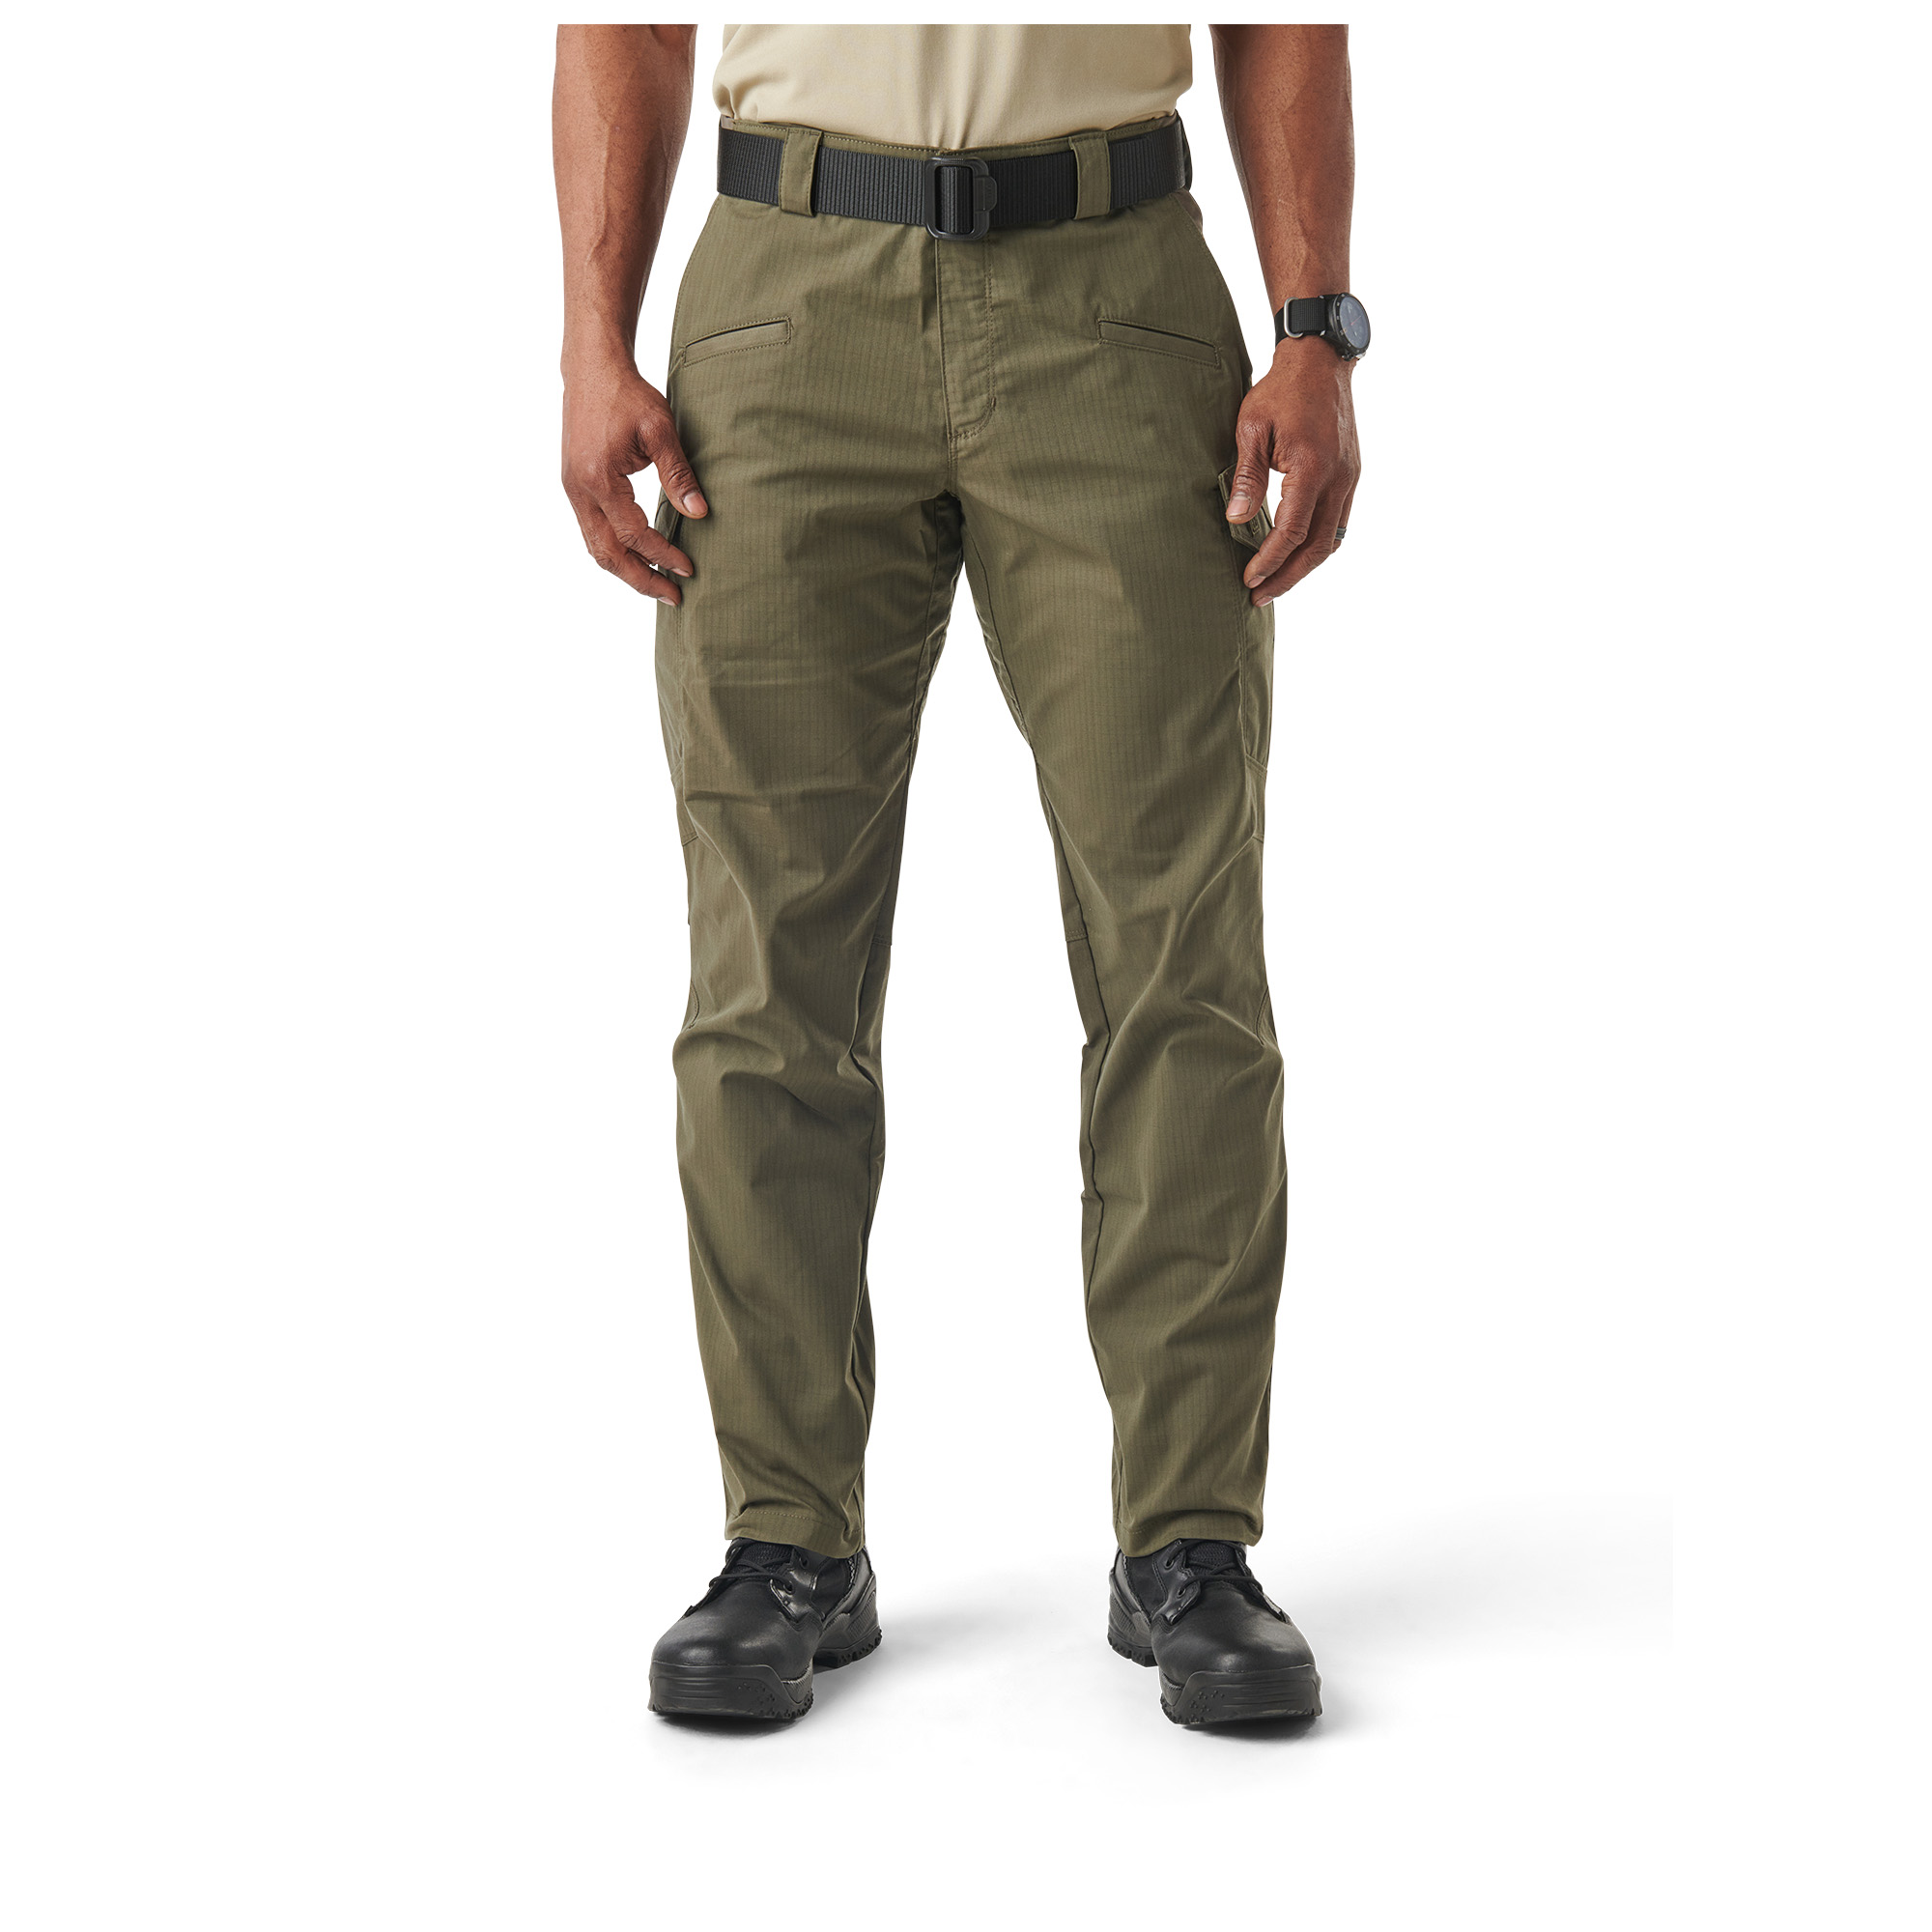 5.11 Tactical ICON PANT - RANGER GREEN